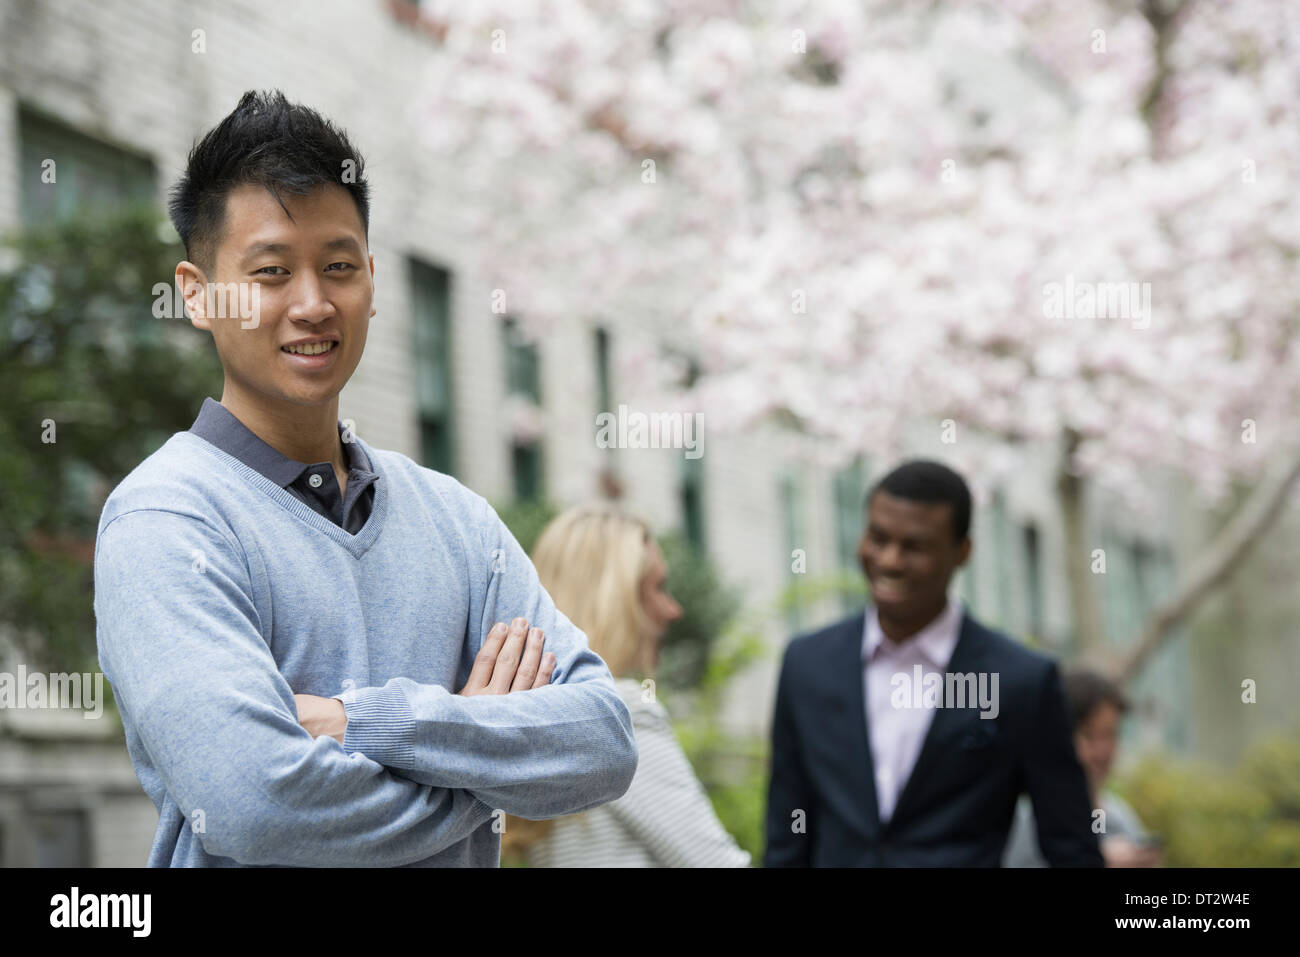 View over cityA man with his arms folded and two people talking in the background under the trees in blossom - Stock Image